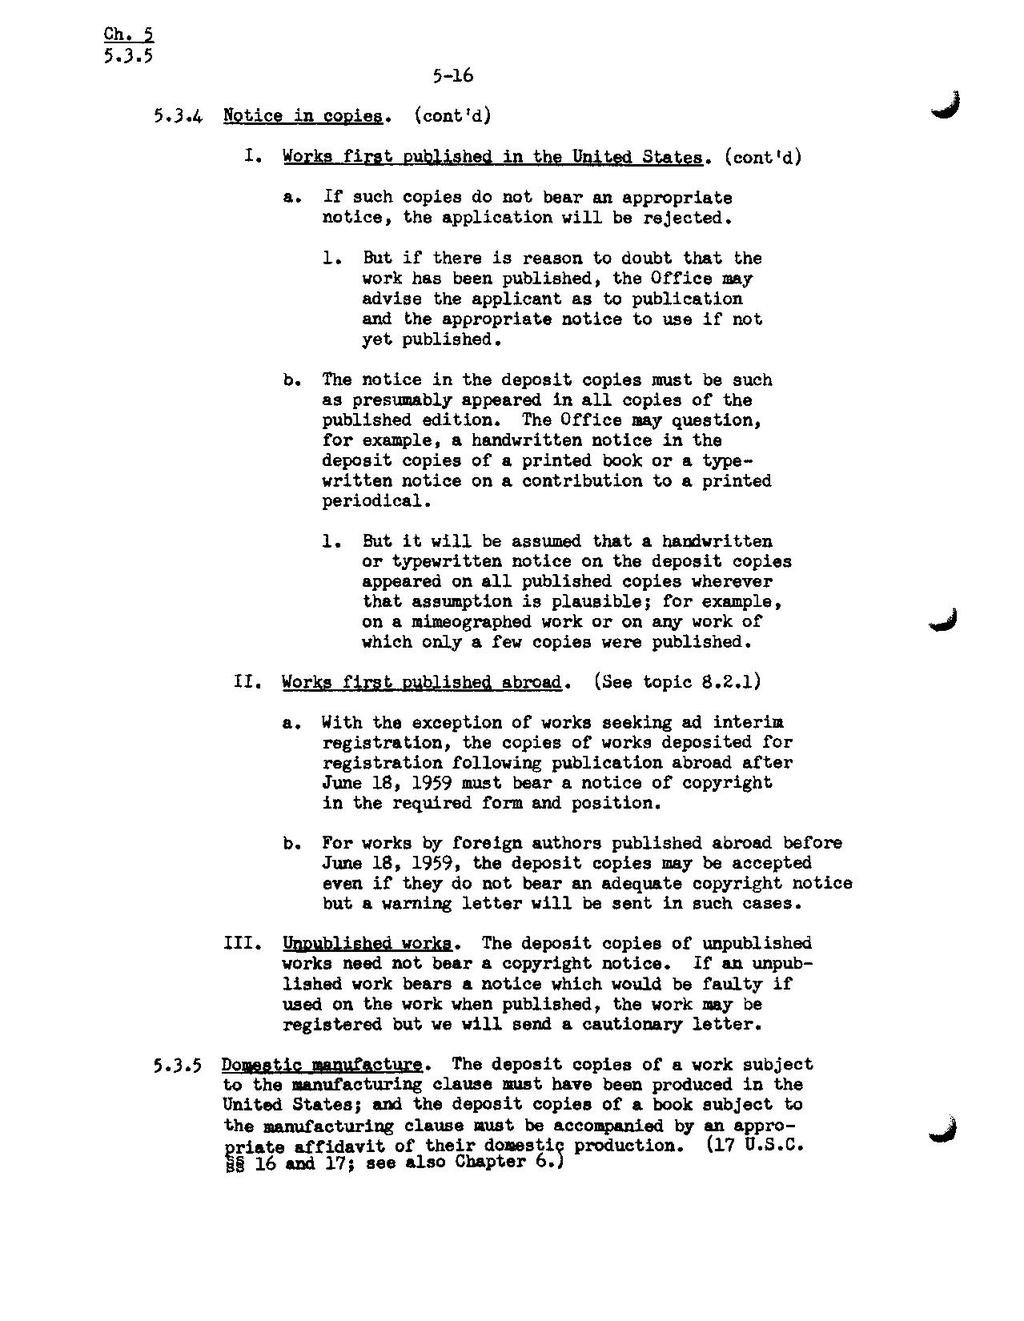 page compendium of us copyright office practices 1973 pdf 198